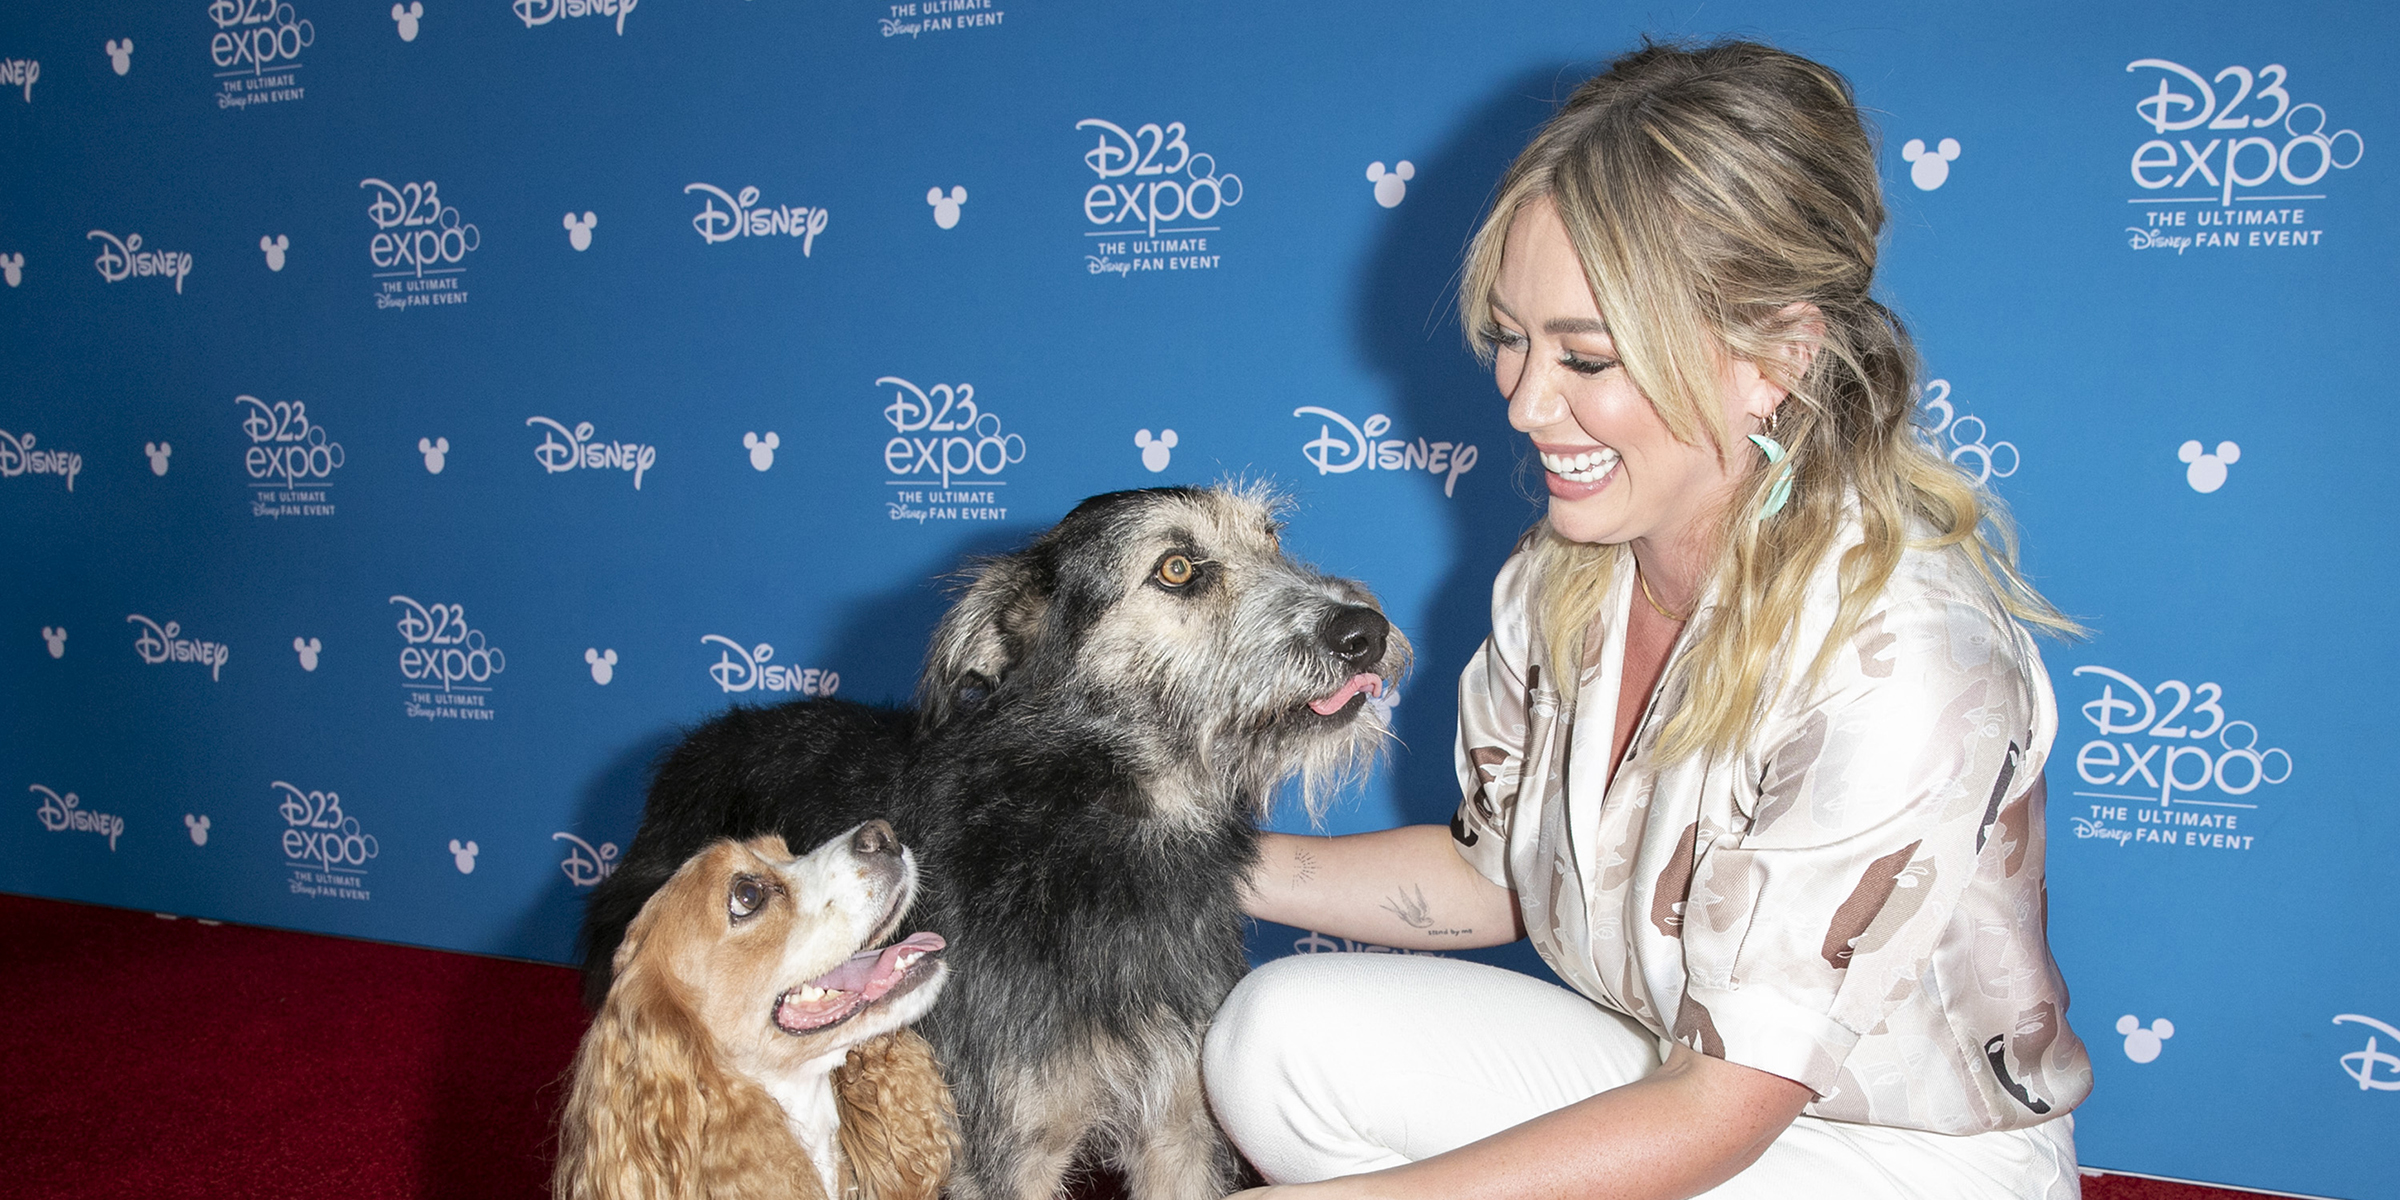 Lady And The Tramp Pups Hit The Red Carpet And Smooch Hilary Duff In Cute Pics